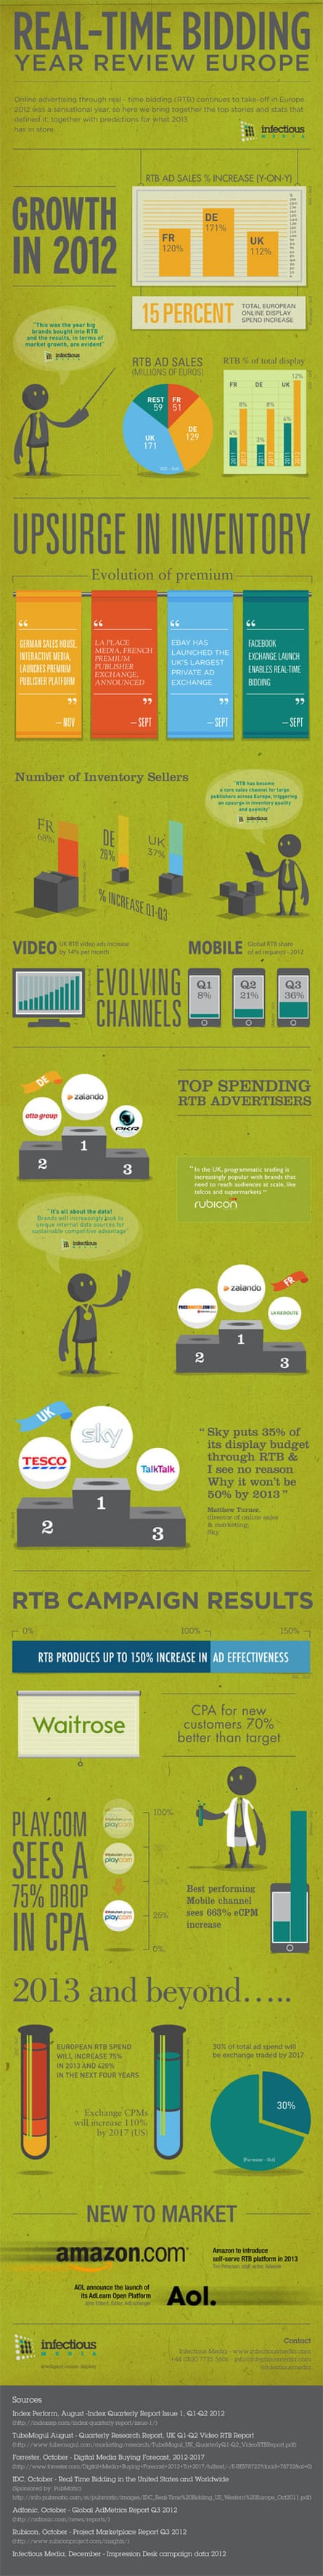 infographic real time bidding 2012 summary